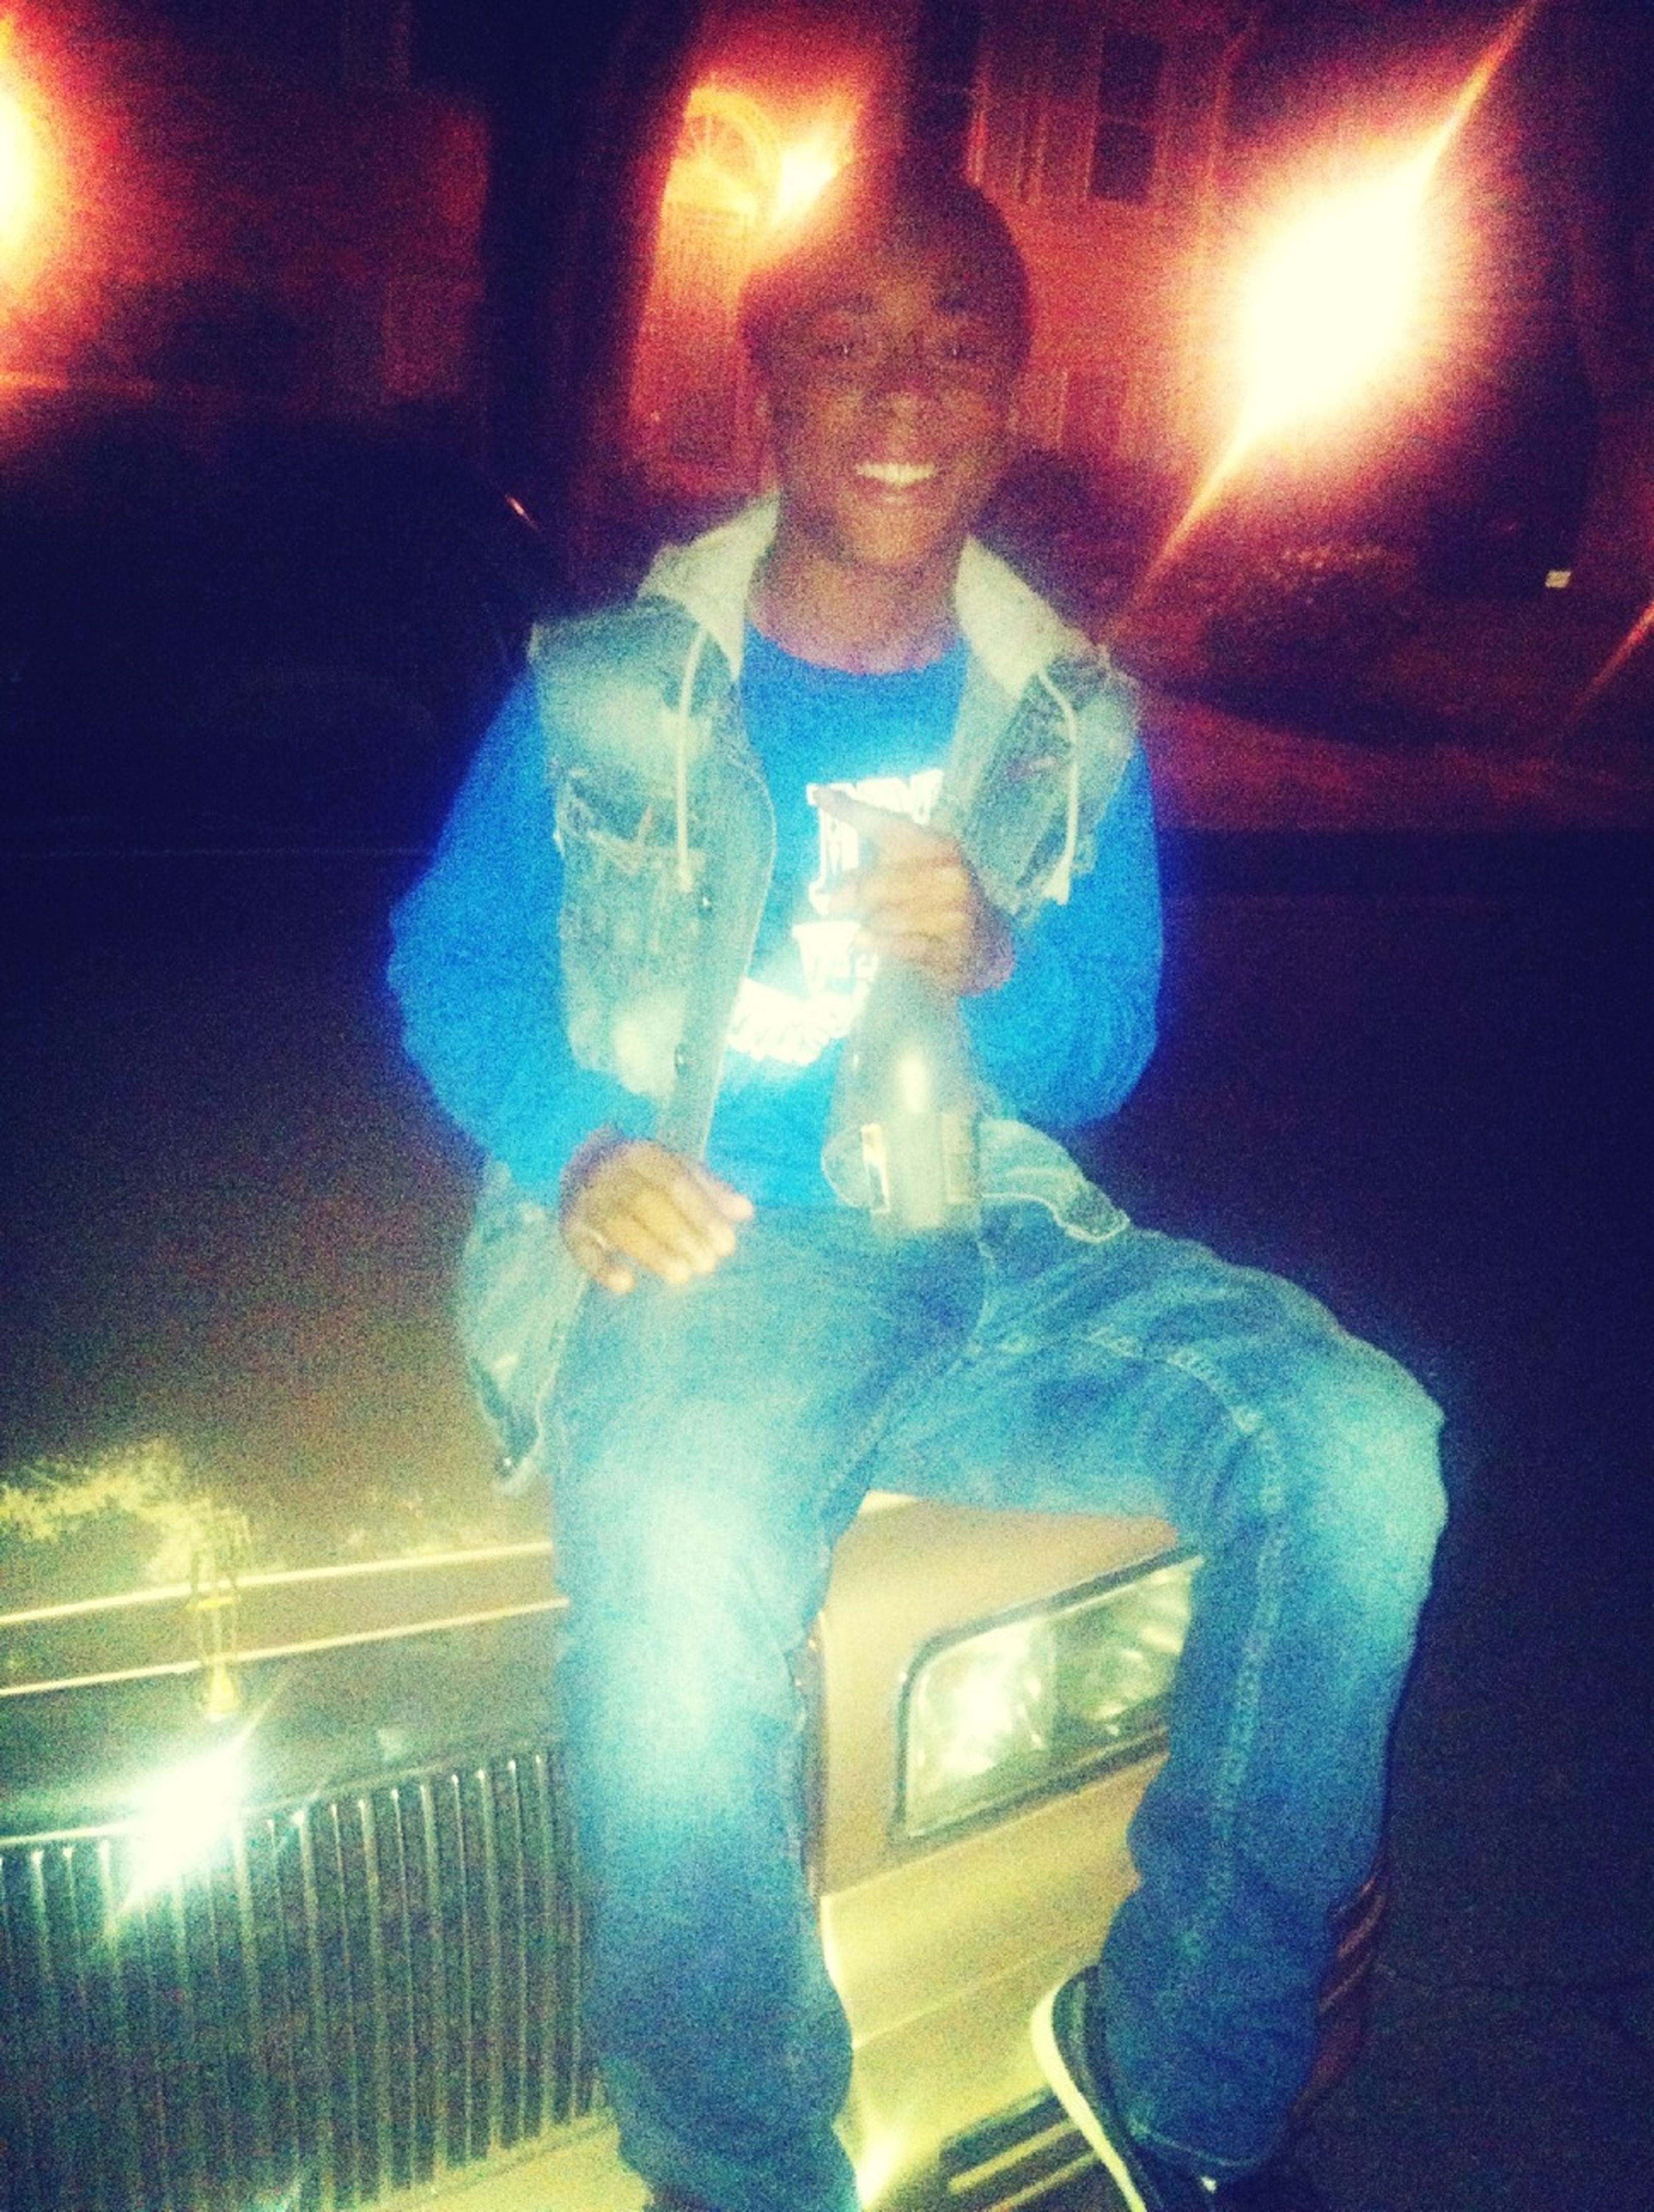 They Say Spiffy How Yu Turn Up Like That